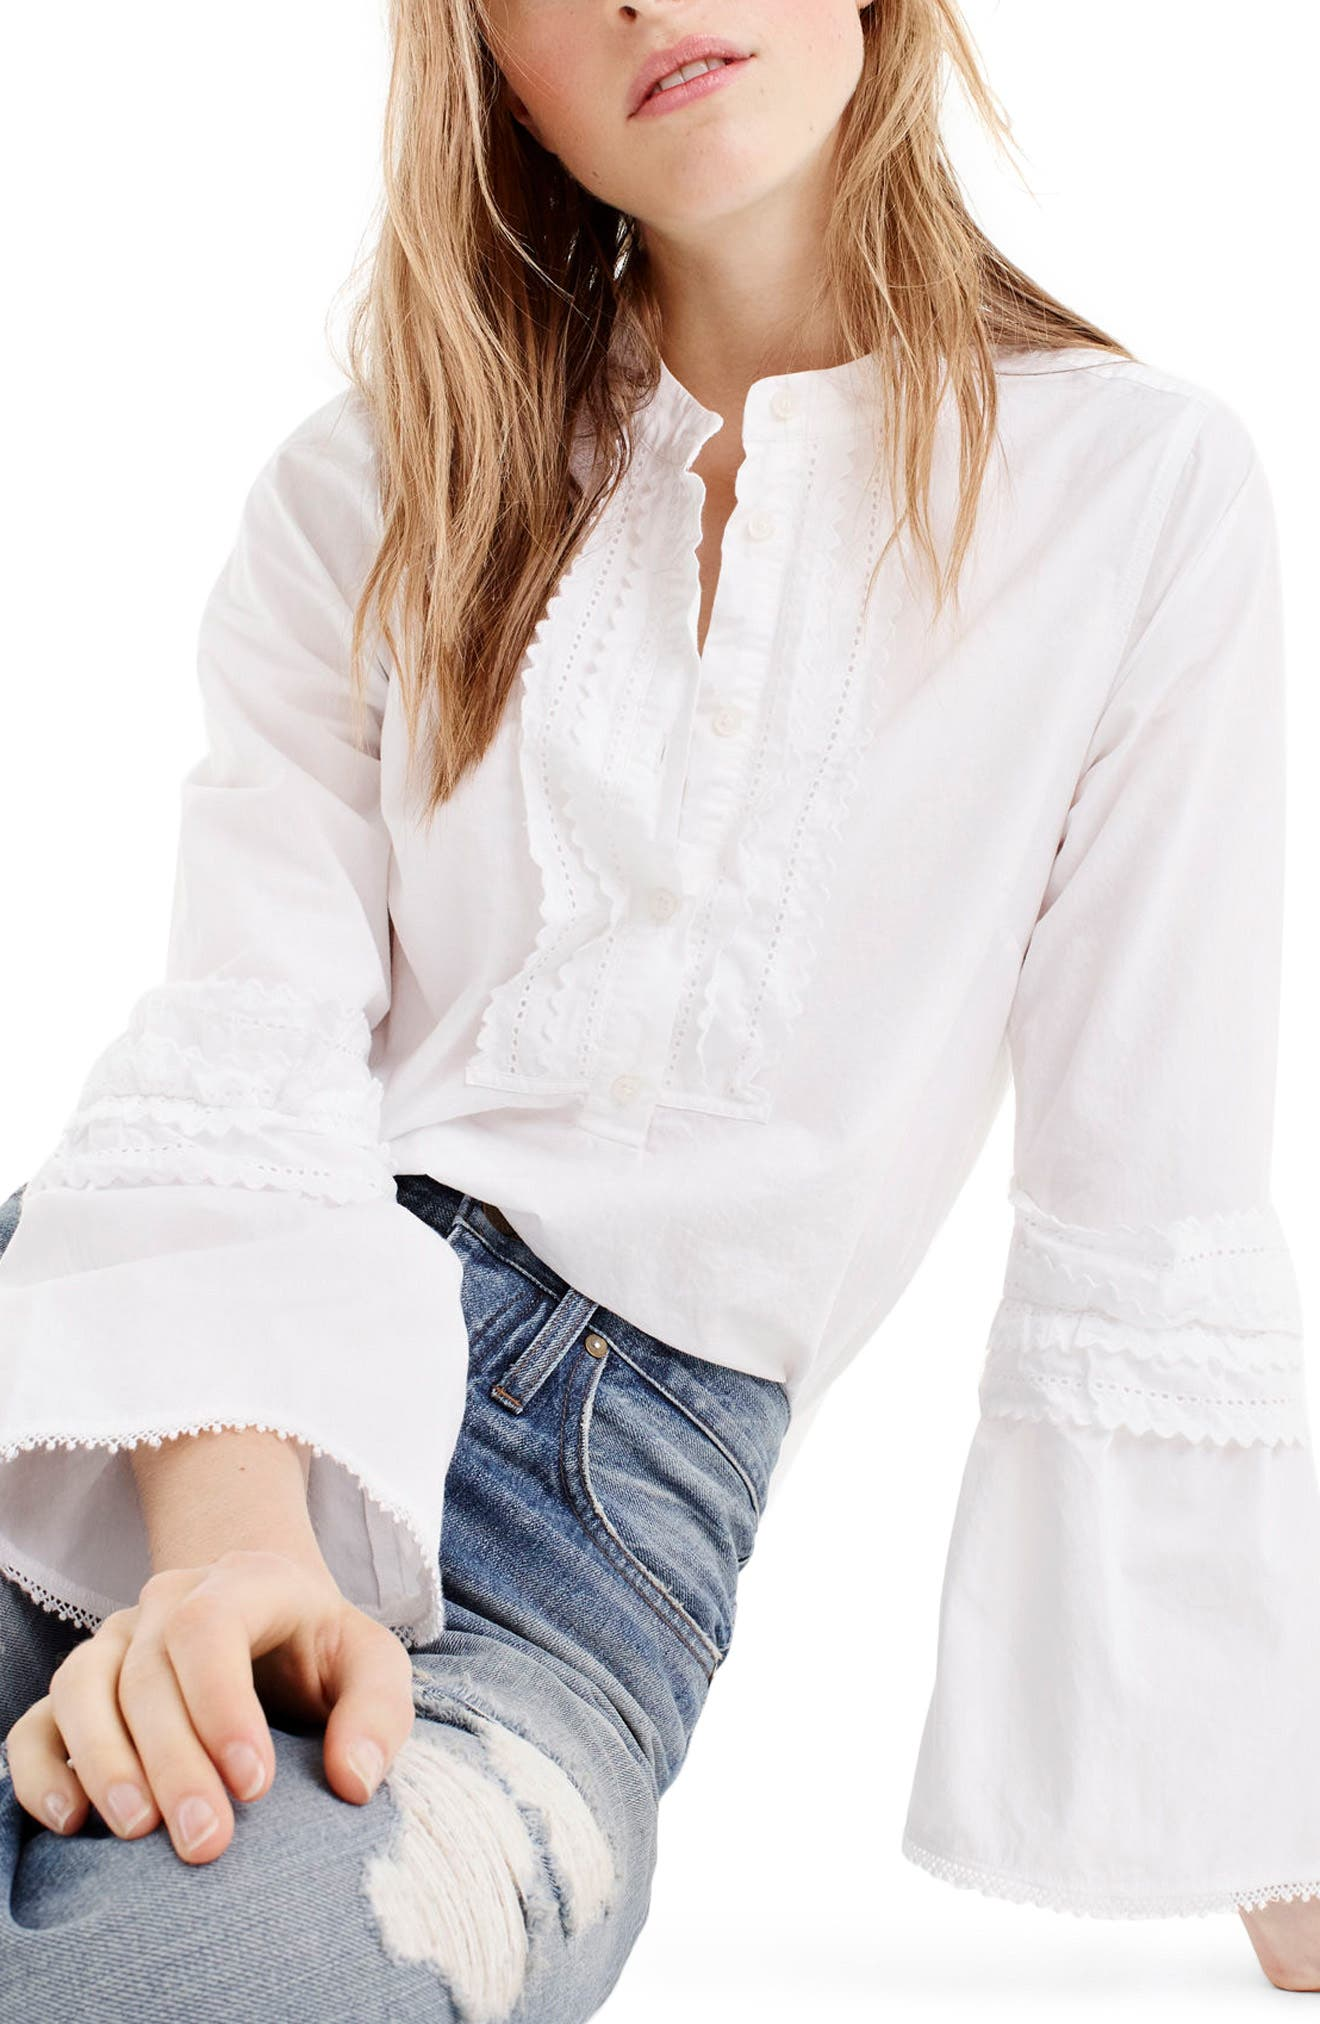 J.Crew Ludwig Embroidered Bell Sleeve Poplin Top (Regular & Petite)